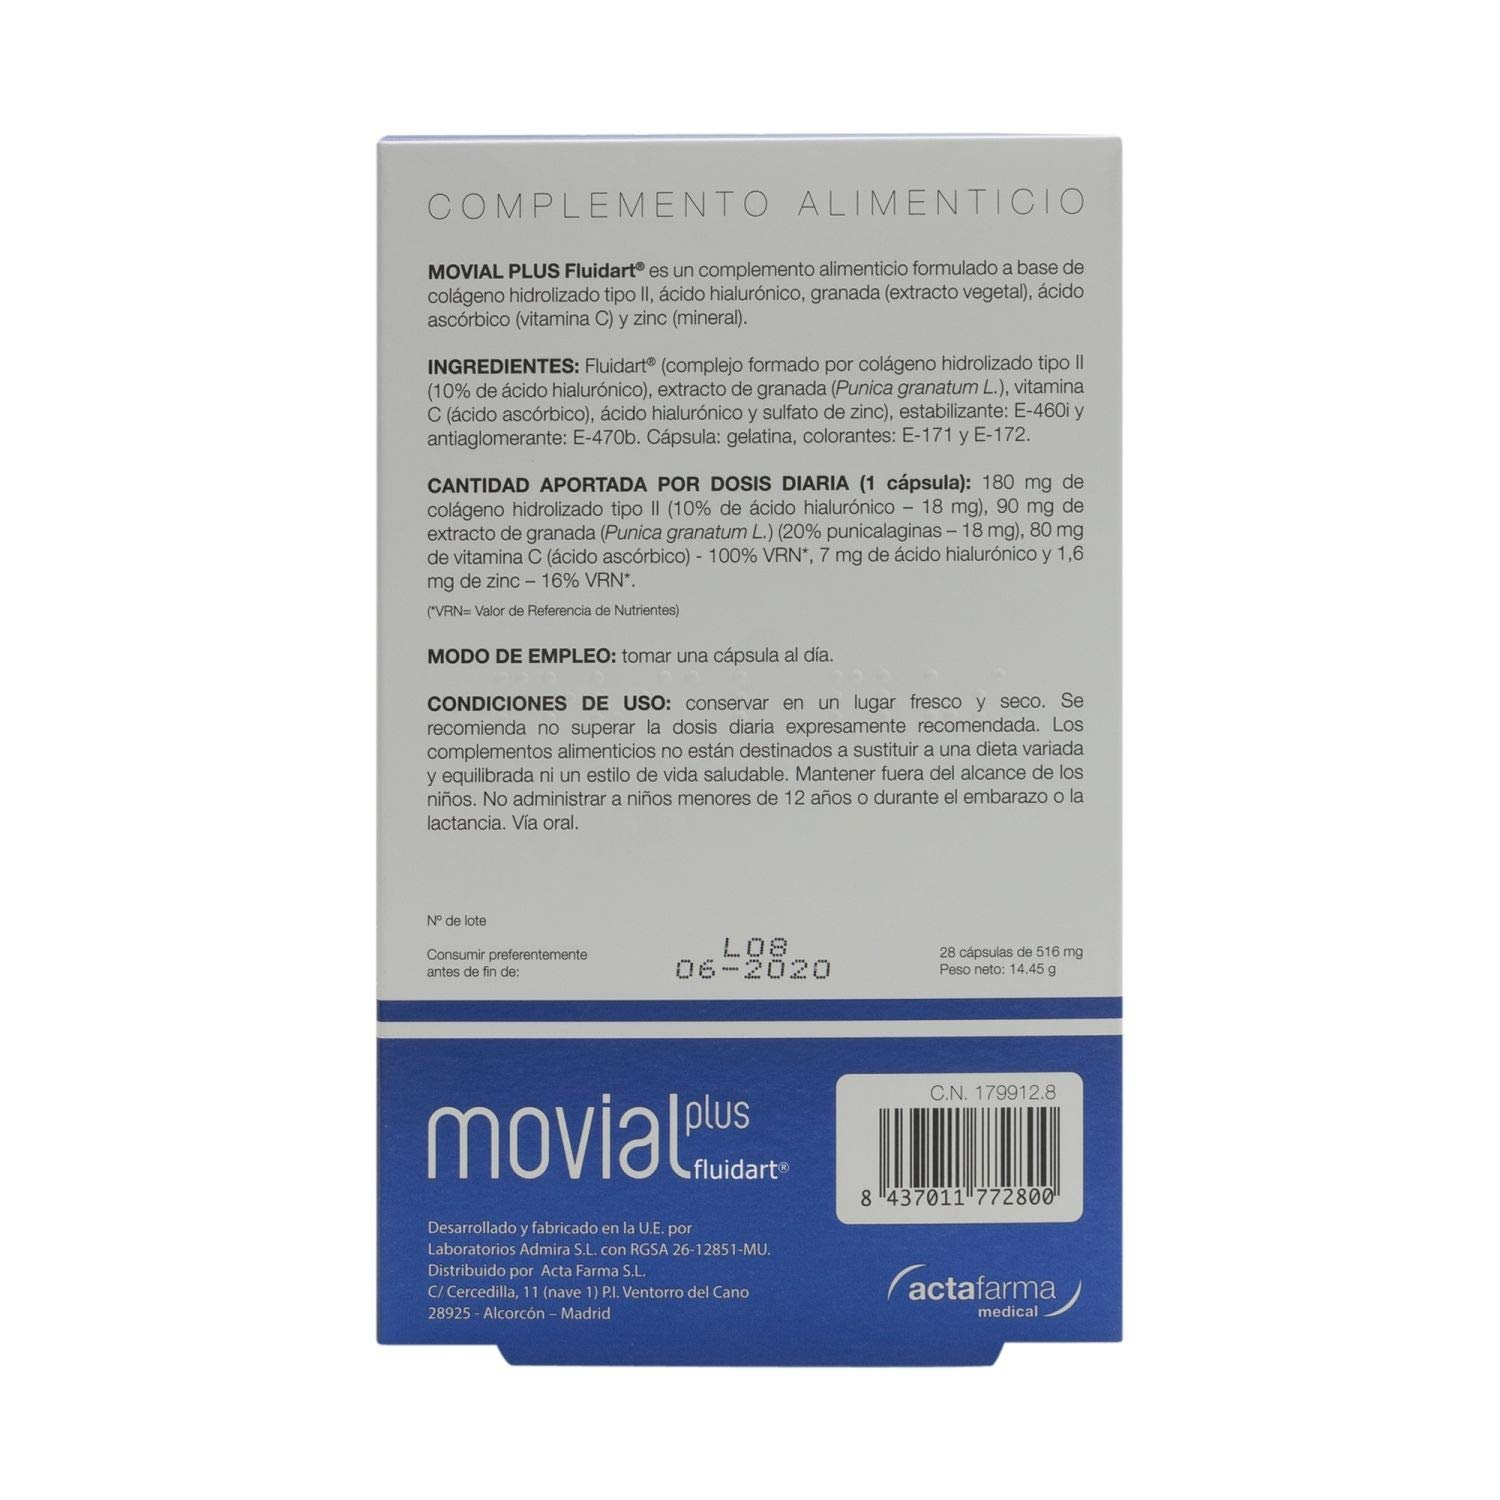 Amazon.com: Movial Plus Nutritional Supplement - Collagen - Vitamin C - Hyaluronic Acid: Health & Personal Care